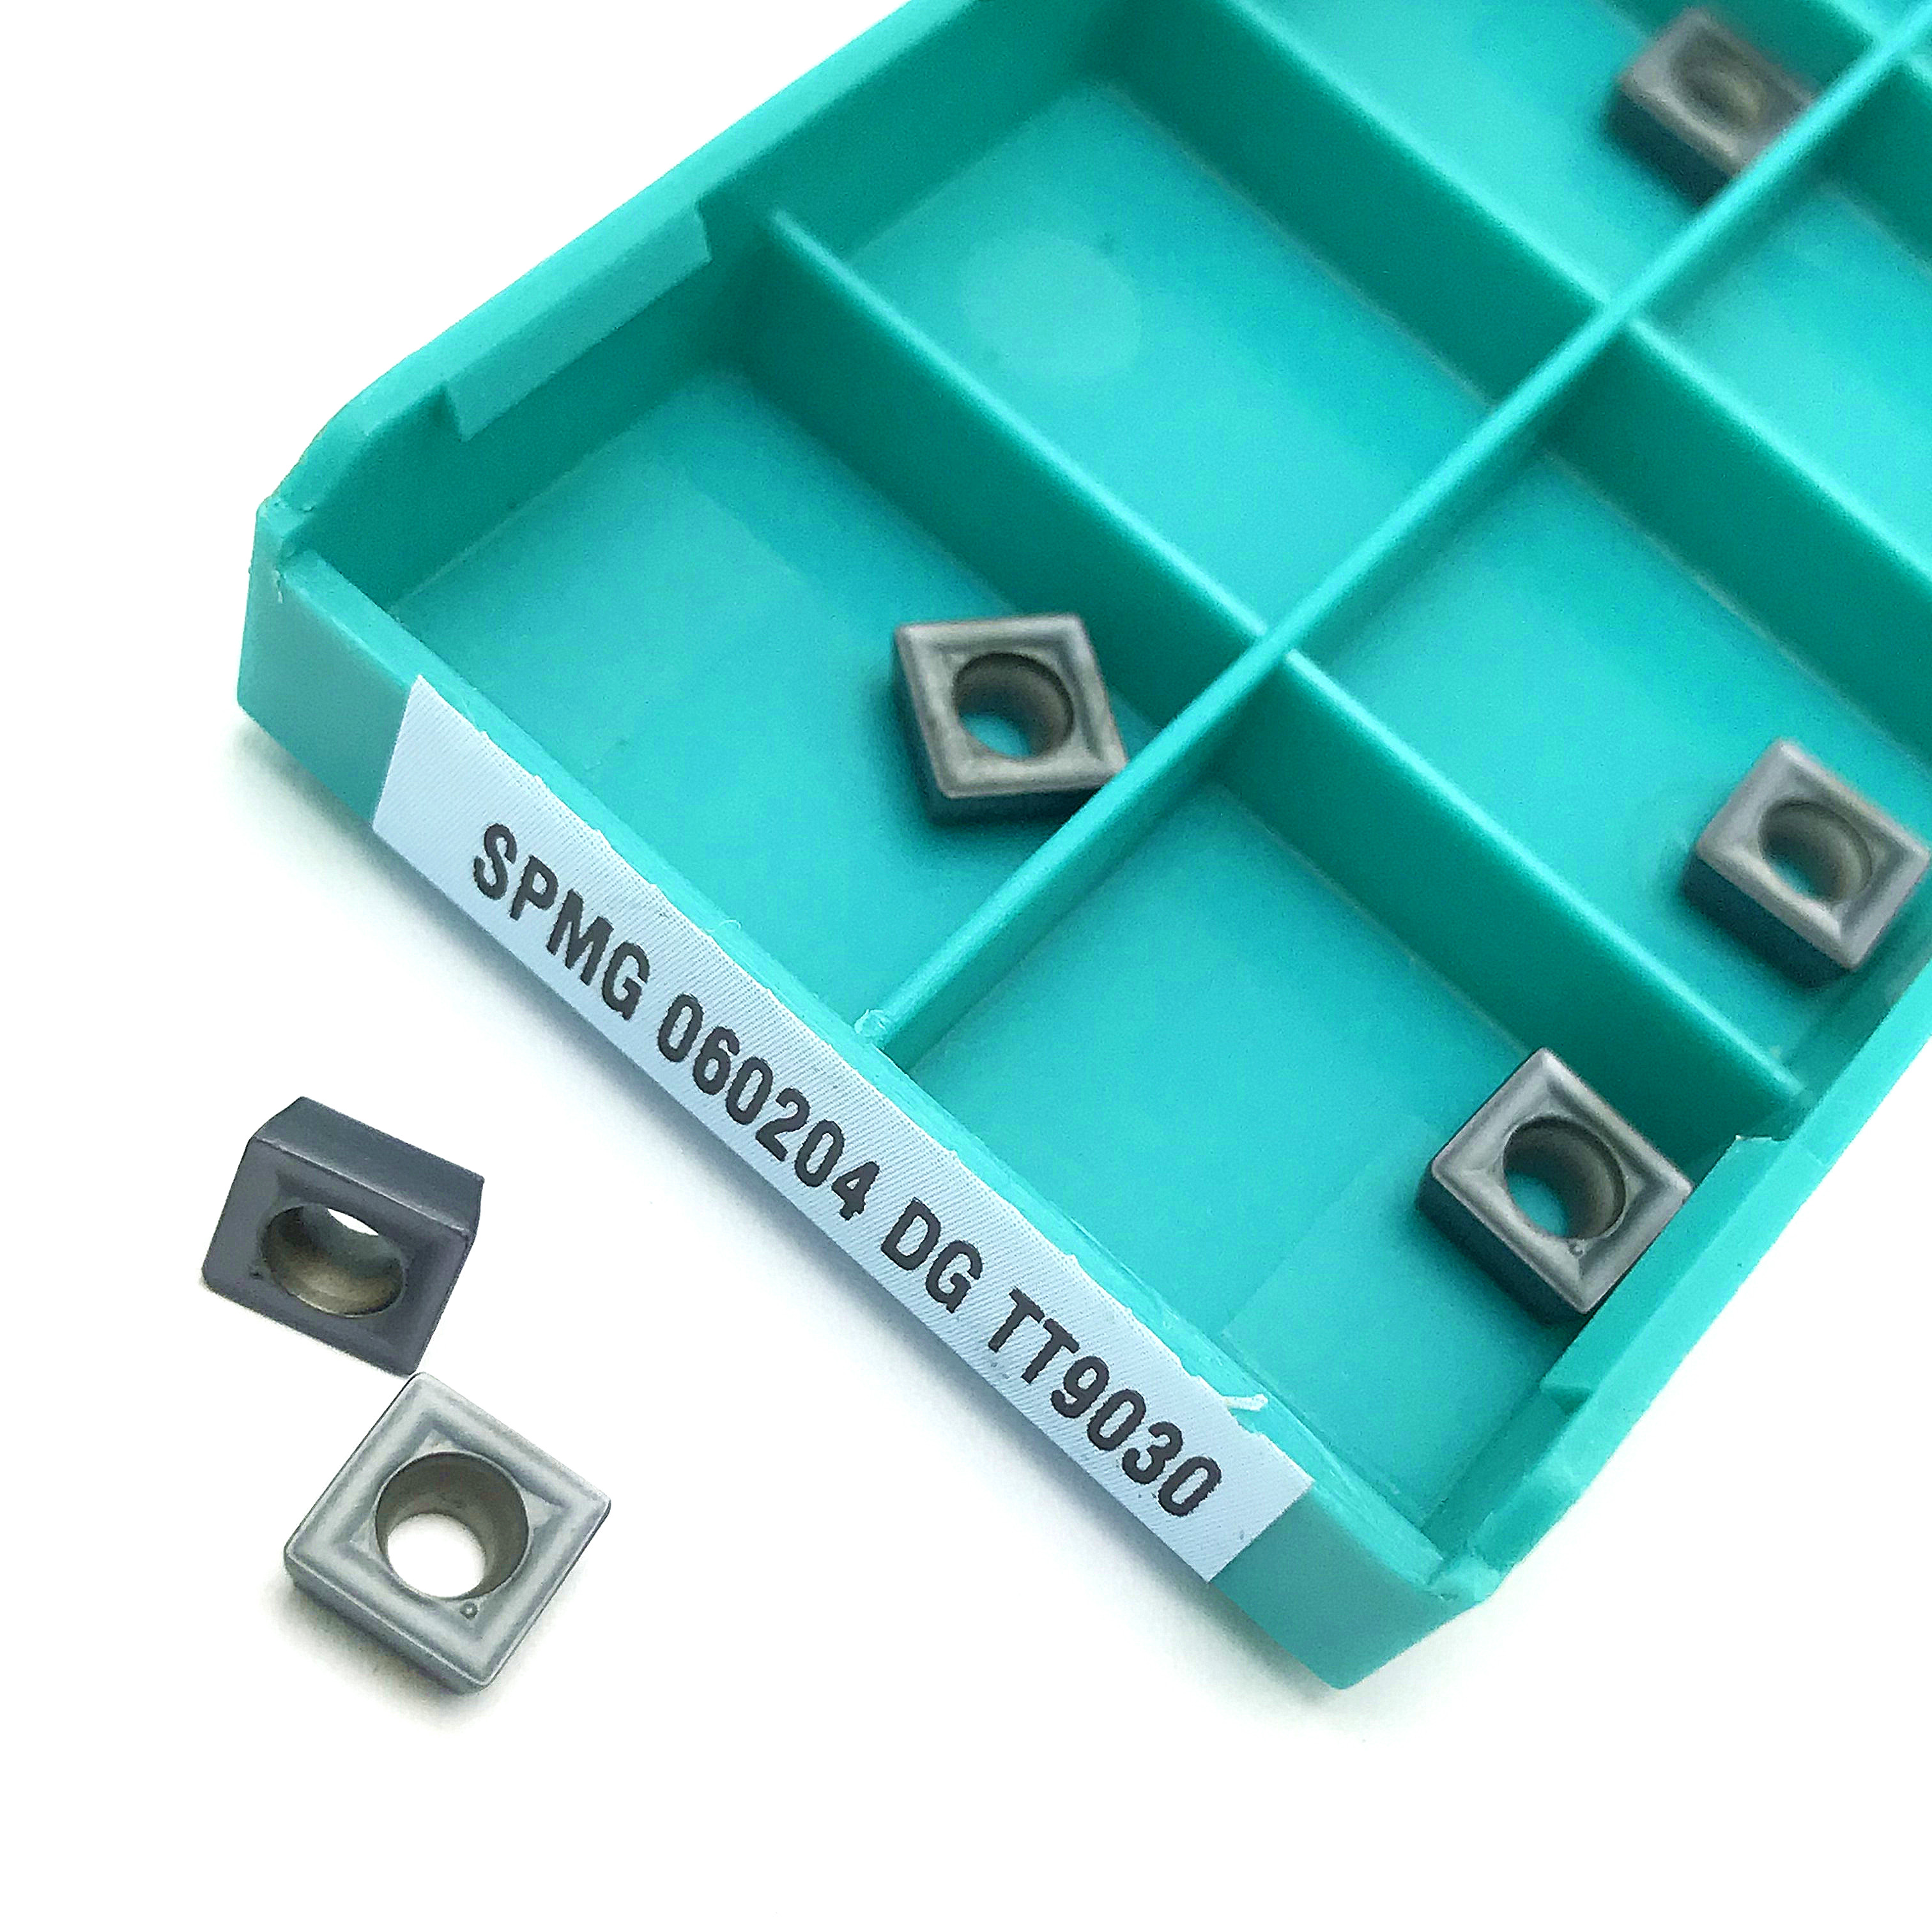 10P 16ER//IL 1.4 LDA Threading Blade CNC Carbide Insert  For Stainless Steel